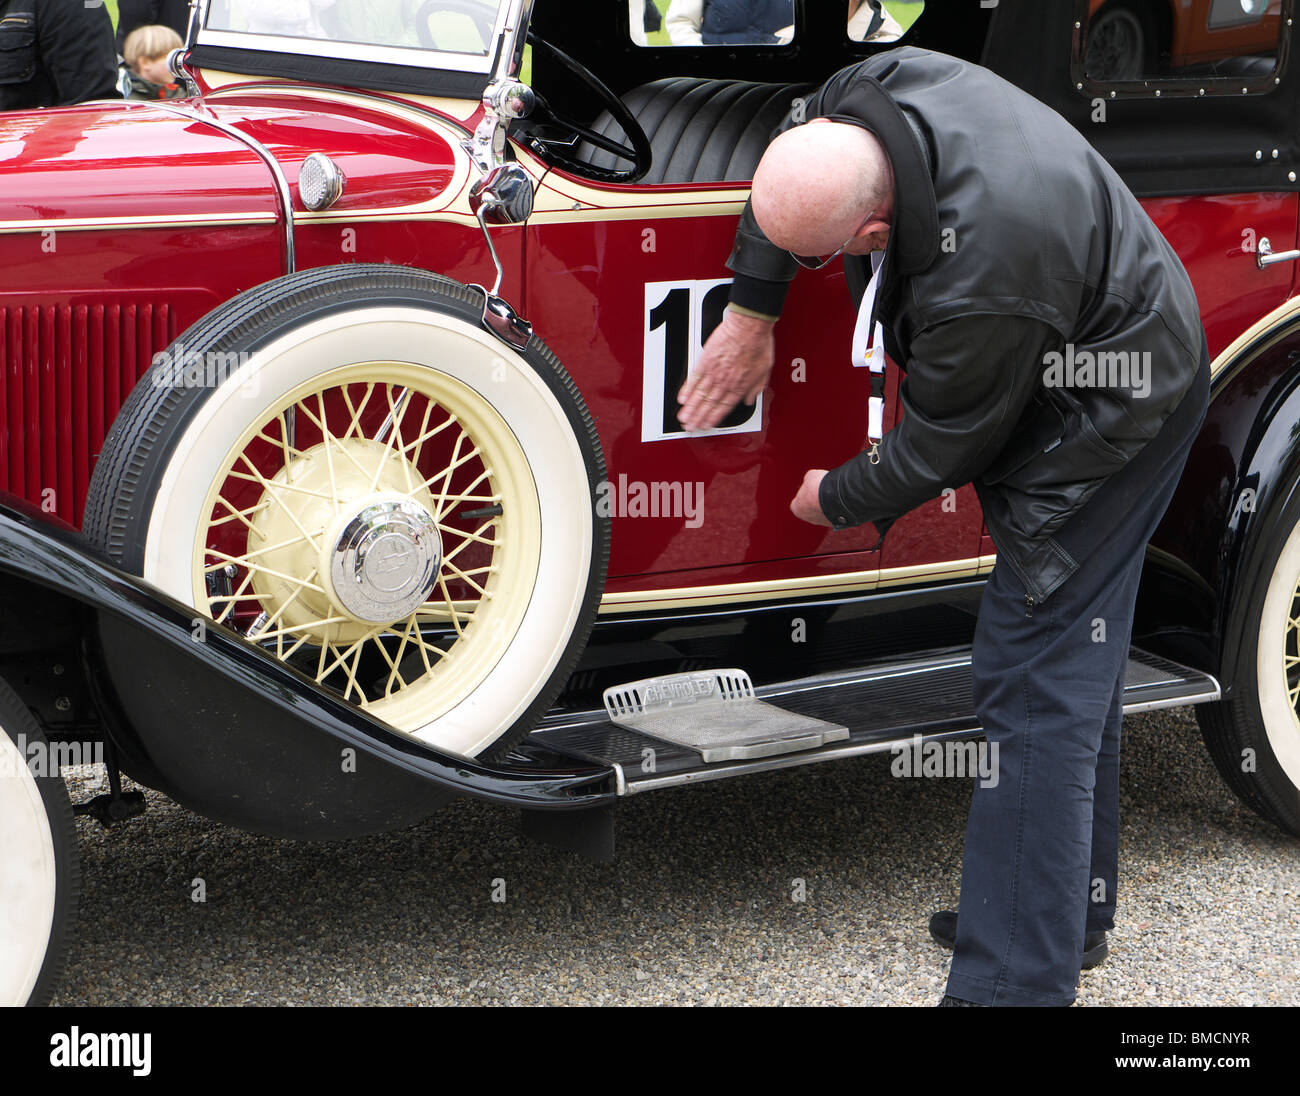 A driver is preparing his classic car for an oldtimer rallye - Stock Image